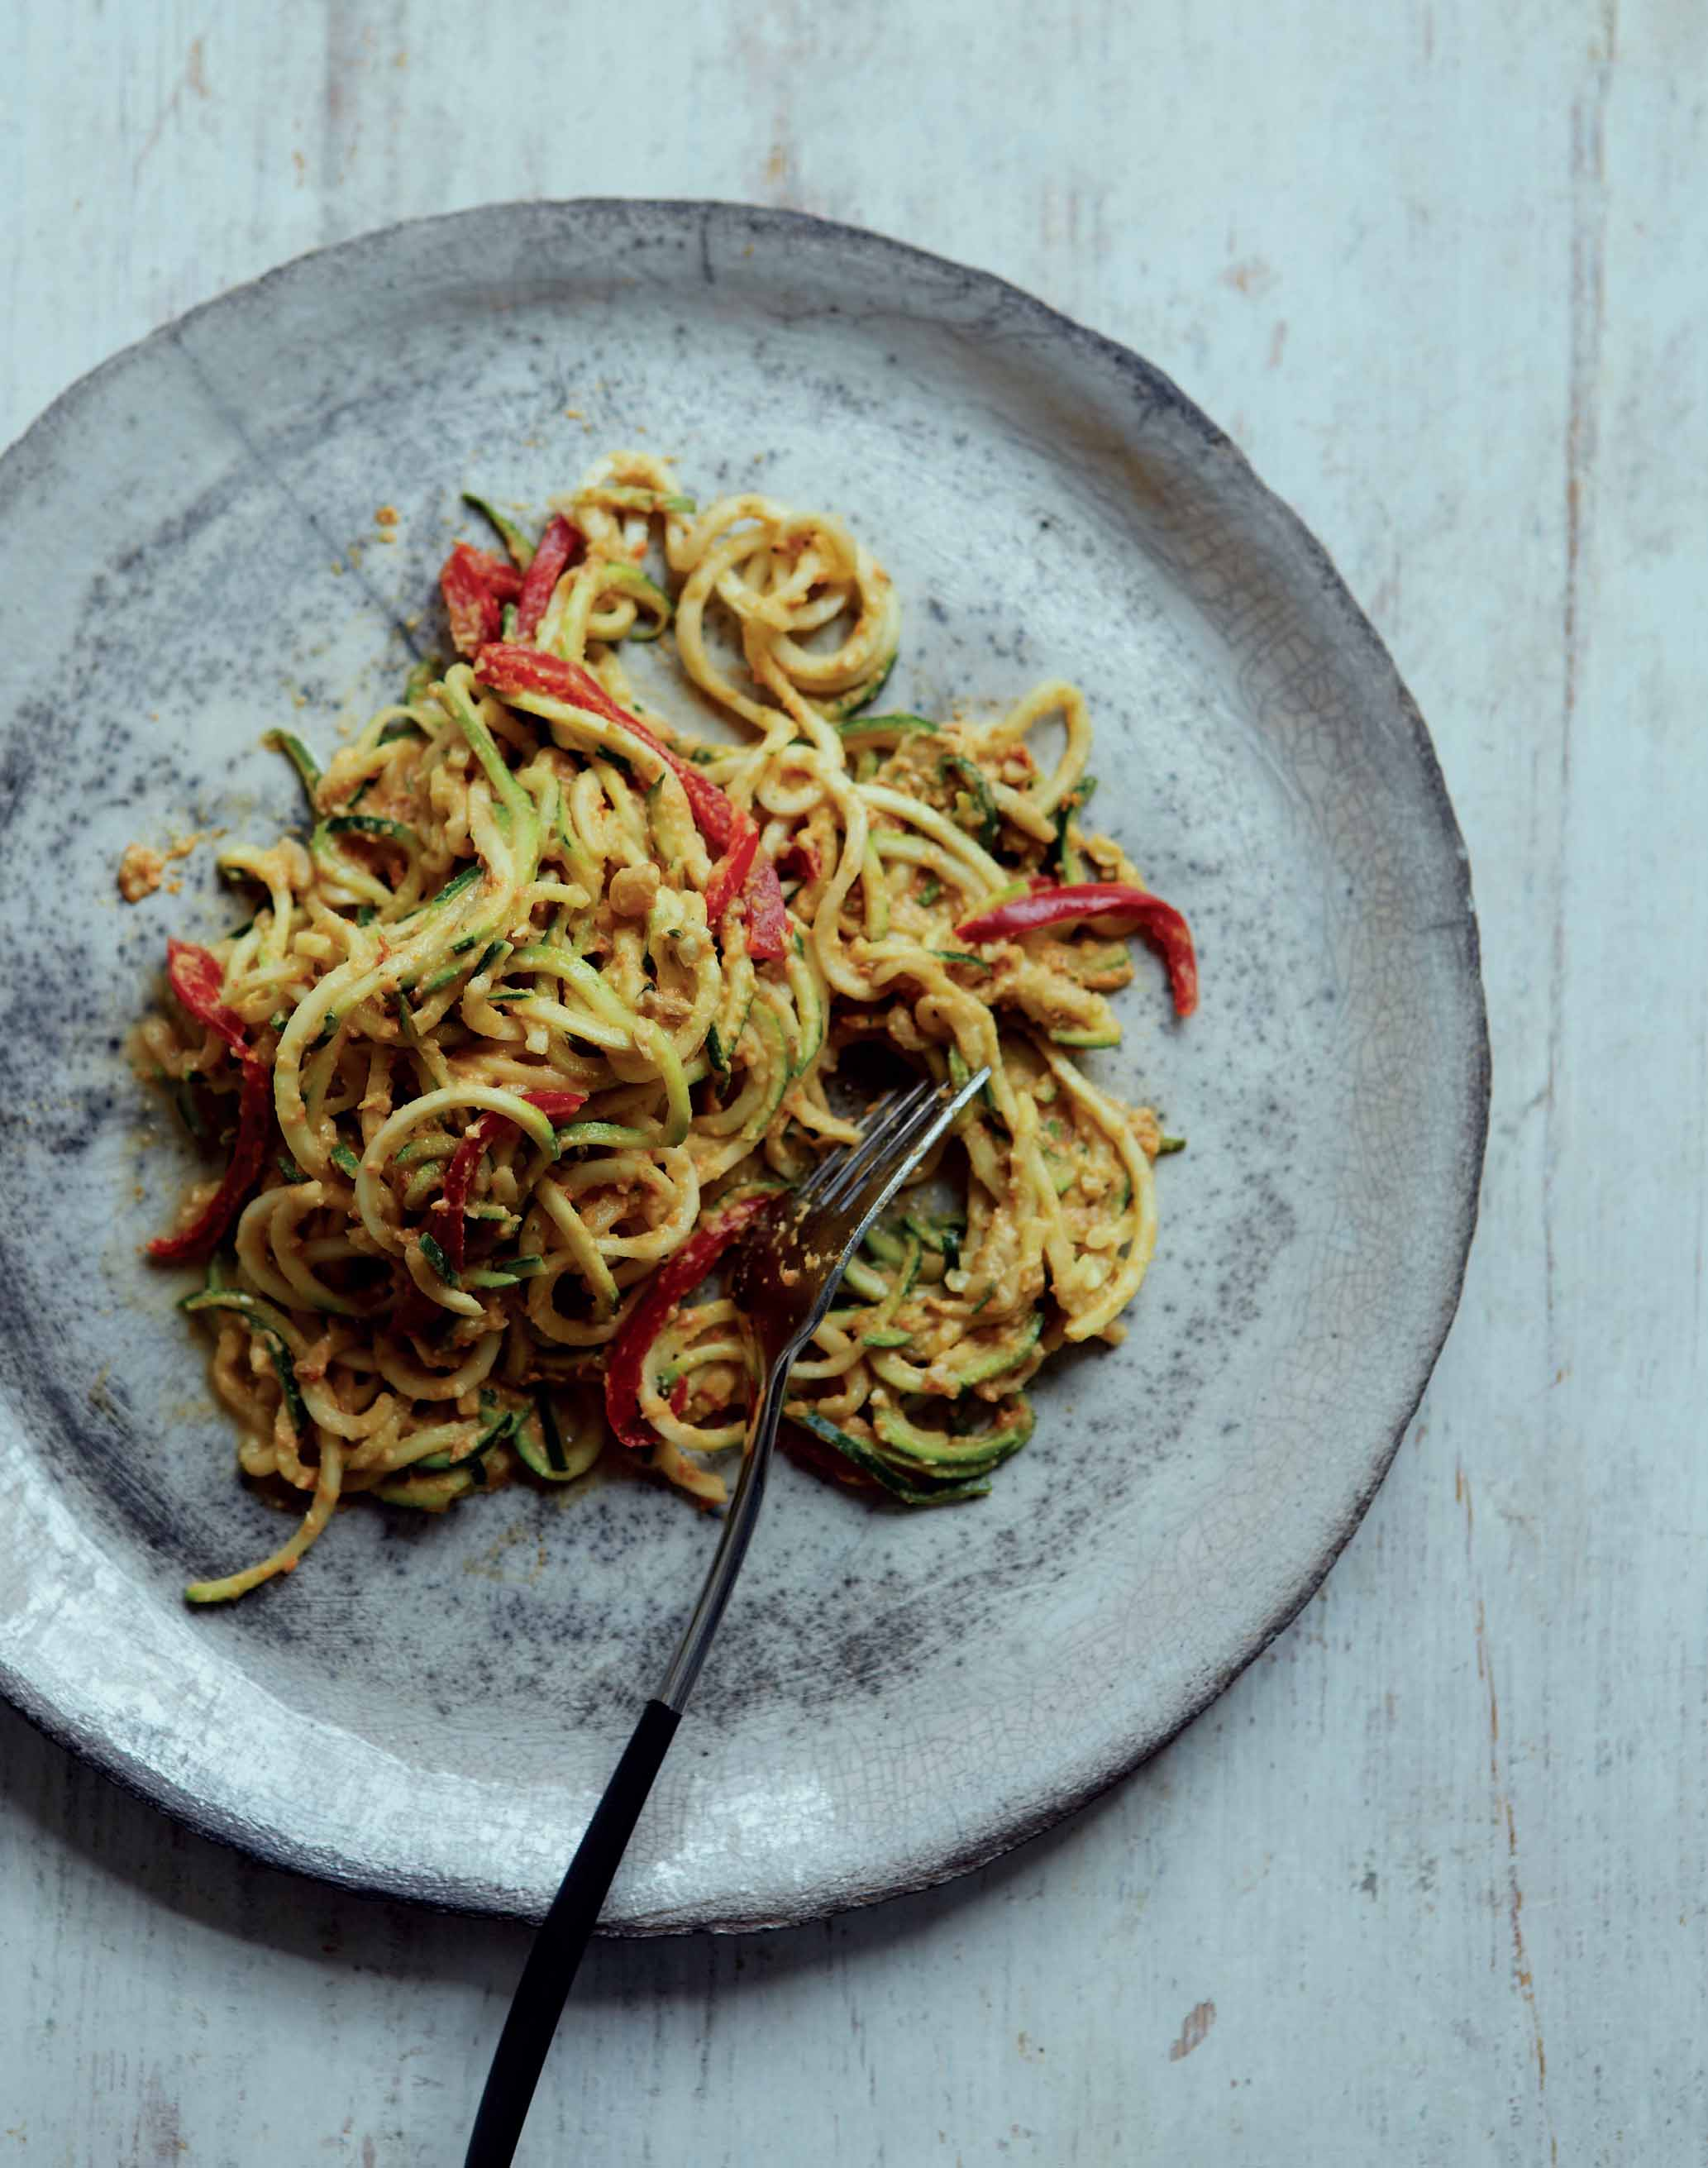 Courgetti spaghetti with a sun-dried tomato, basil and avocado sauce